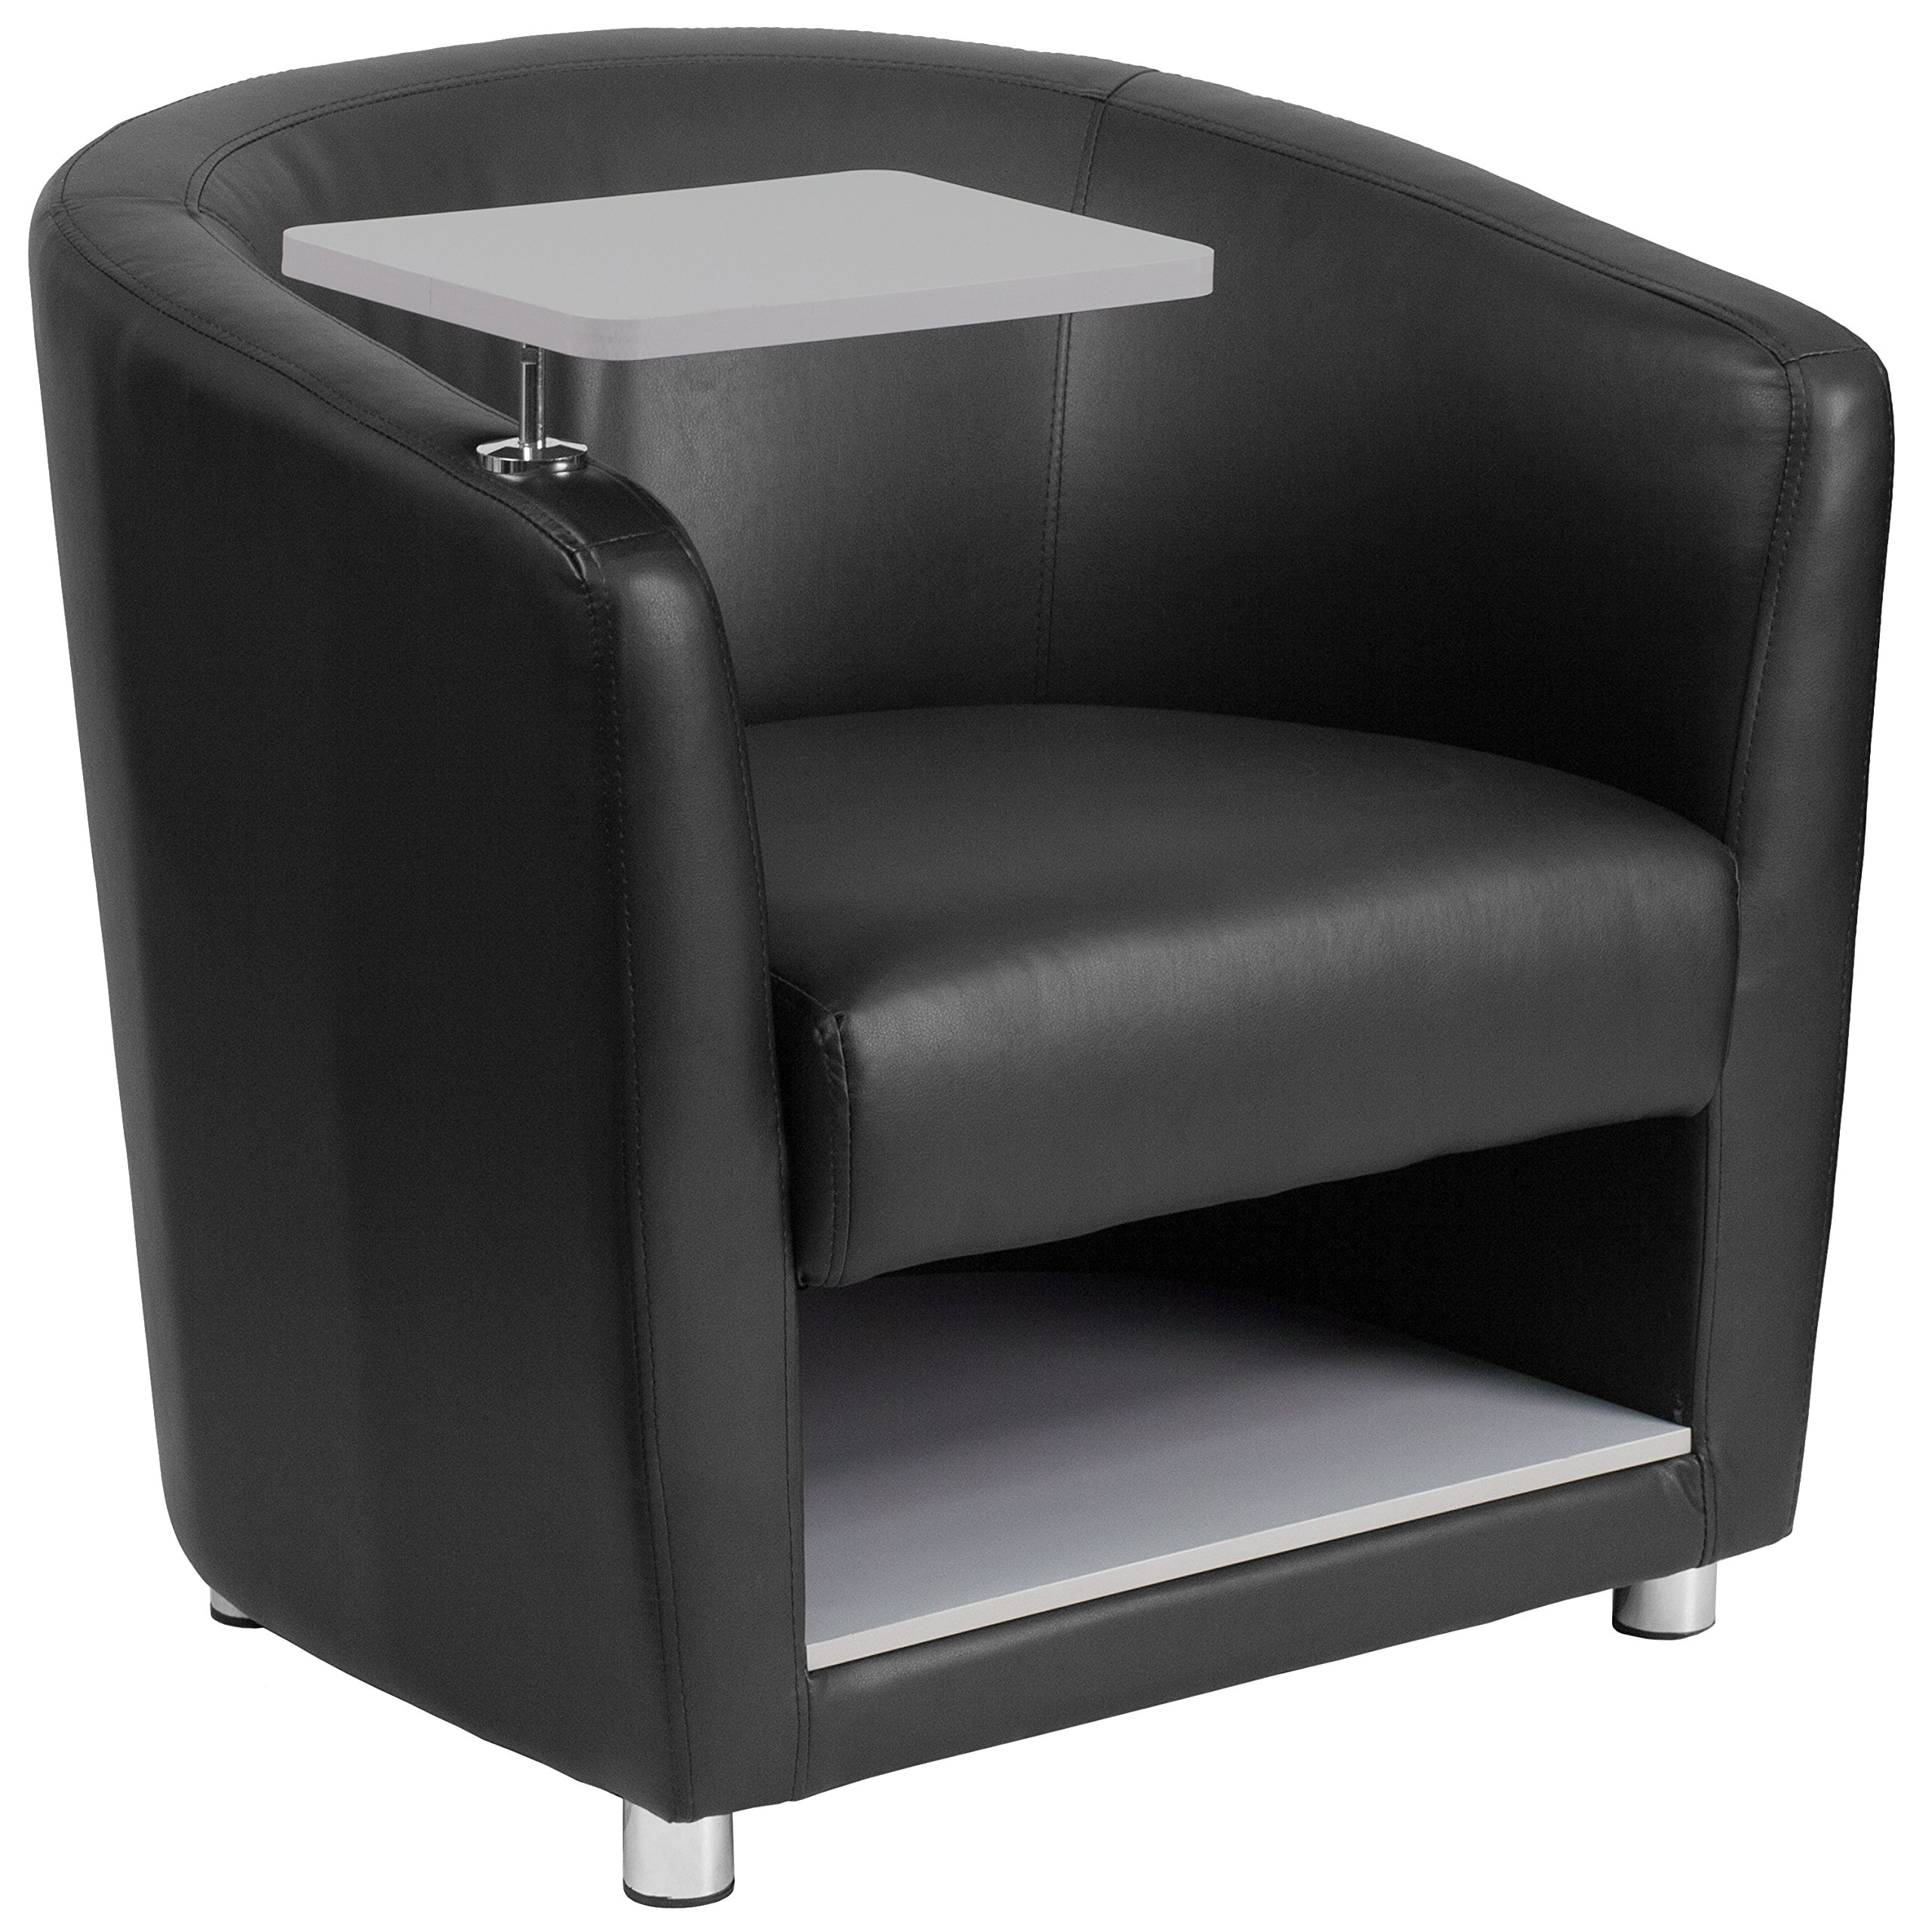 Flash Furniture Black Leather Guest Chair with Tablet Arm, Chrome Legs and Under Seat Storage